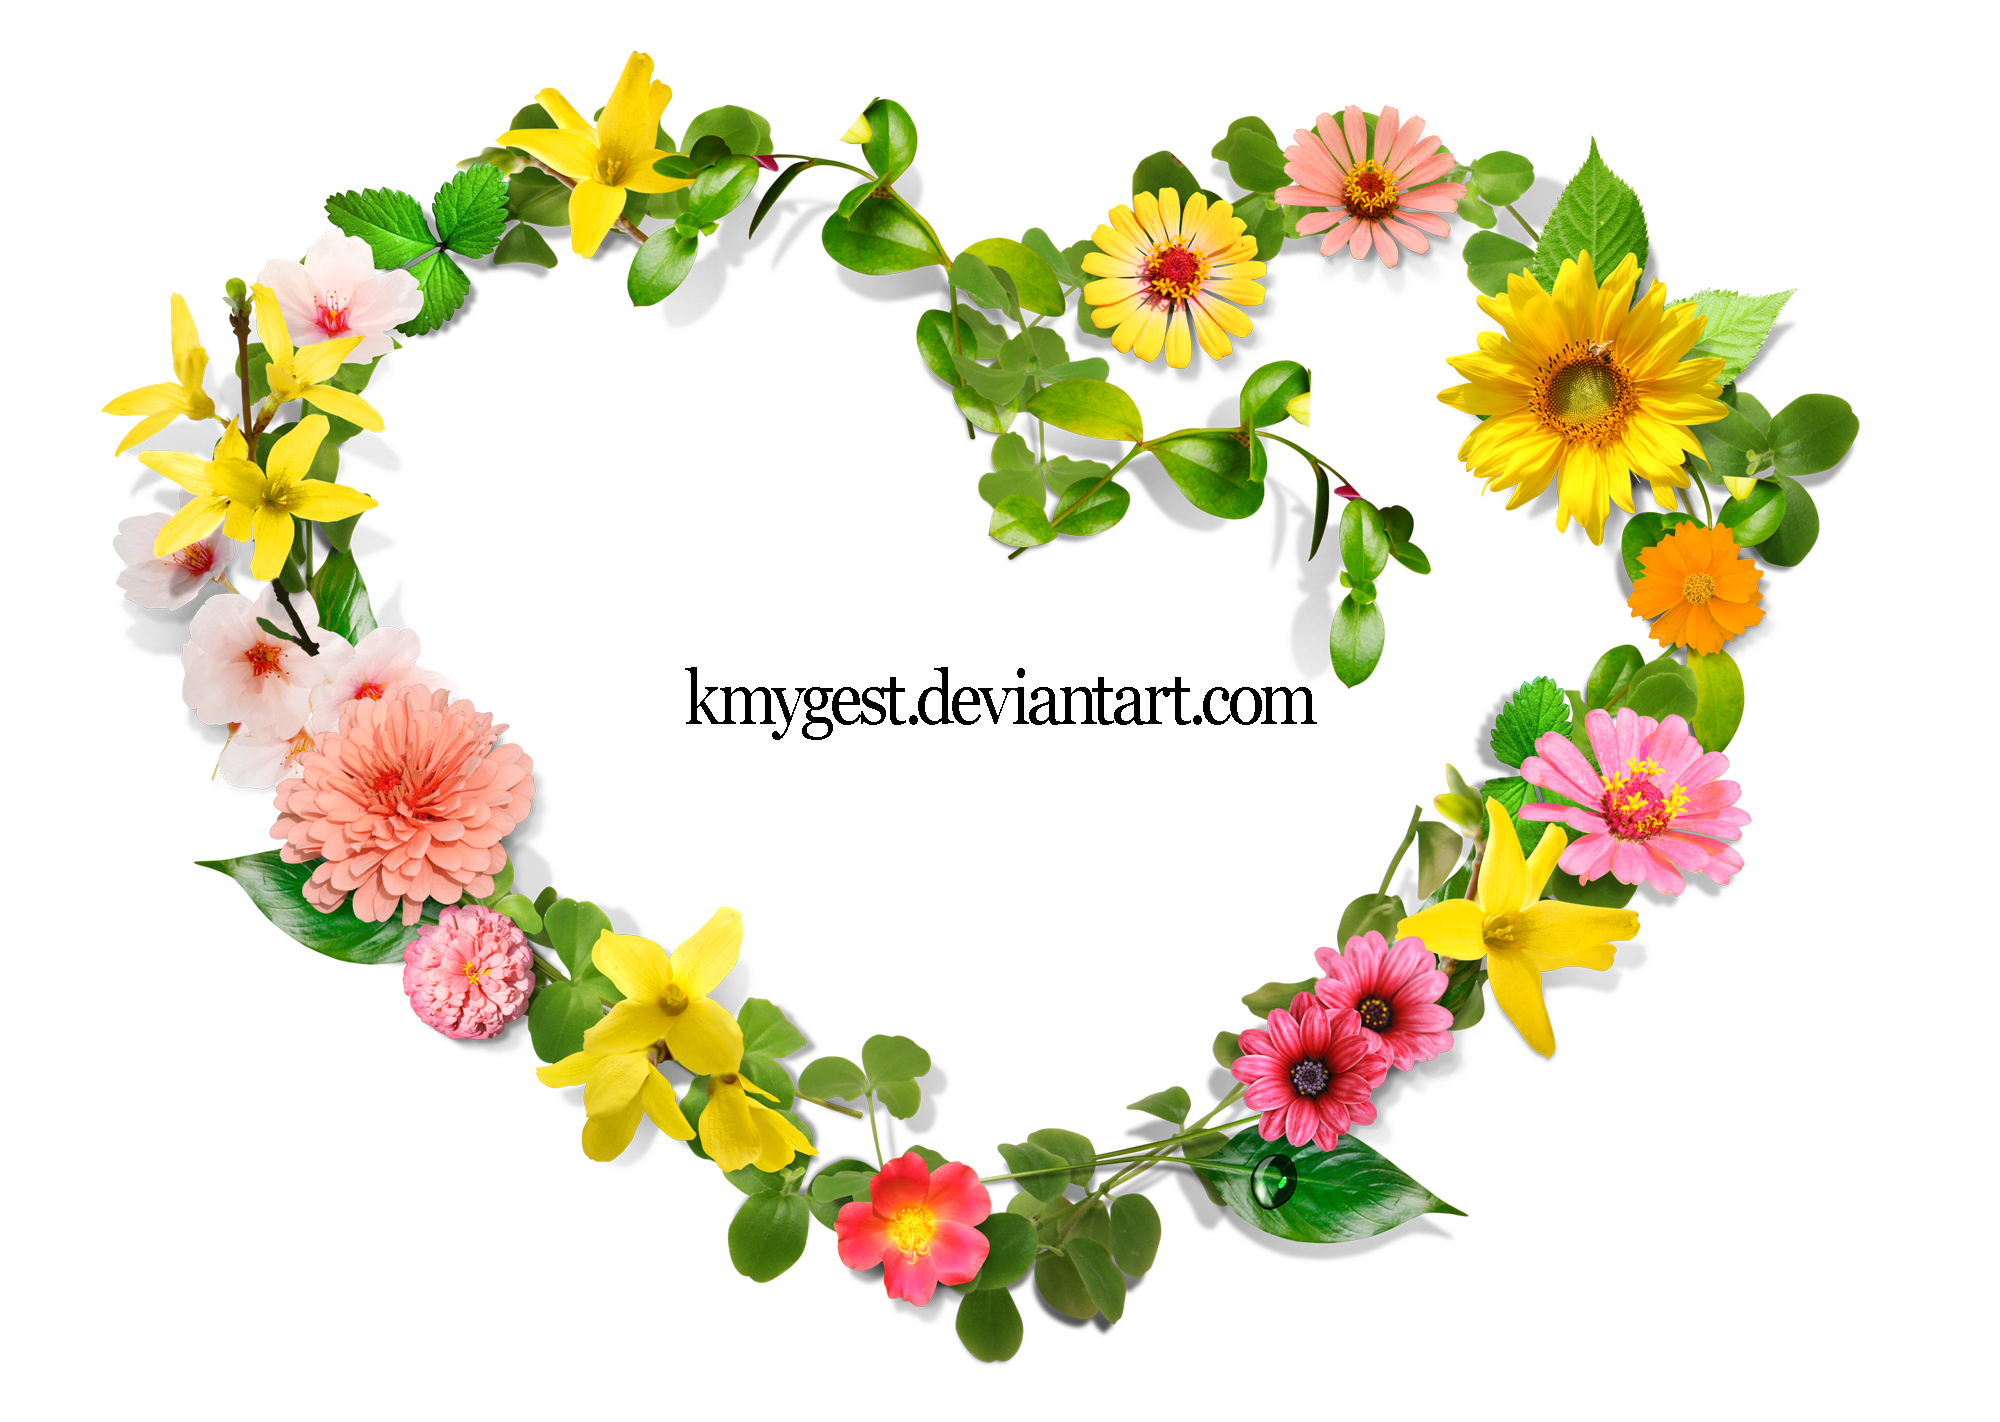 Flower heart png. Flowers by kmygraphic on